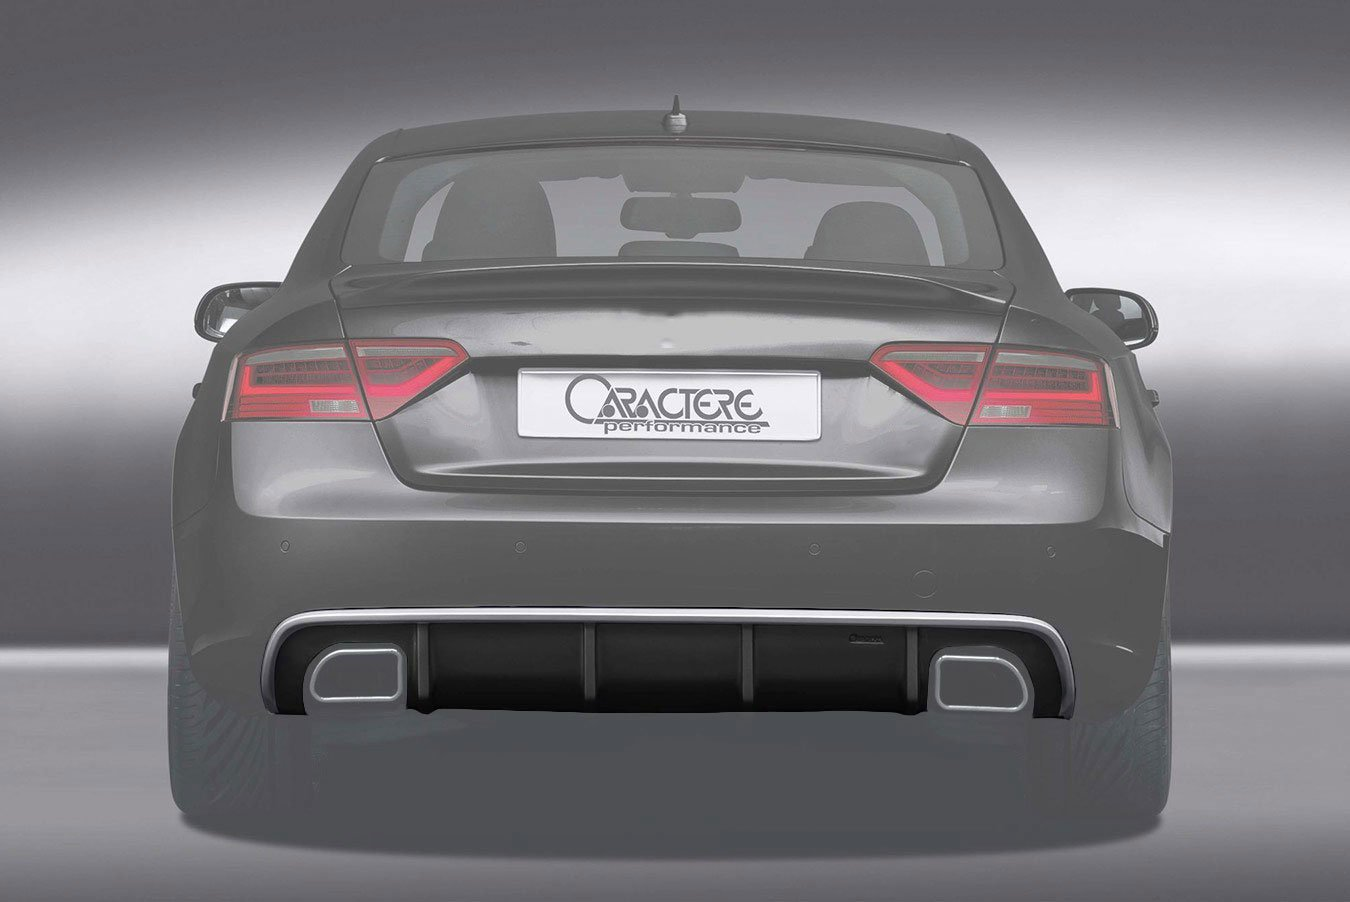 Caractere Rear Diffuser With 2 Cuttings For Caractere Exhaust Fits Audi A5 B8 5 Sportback S Line Bk Motorsport